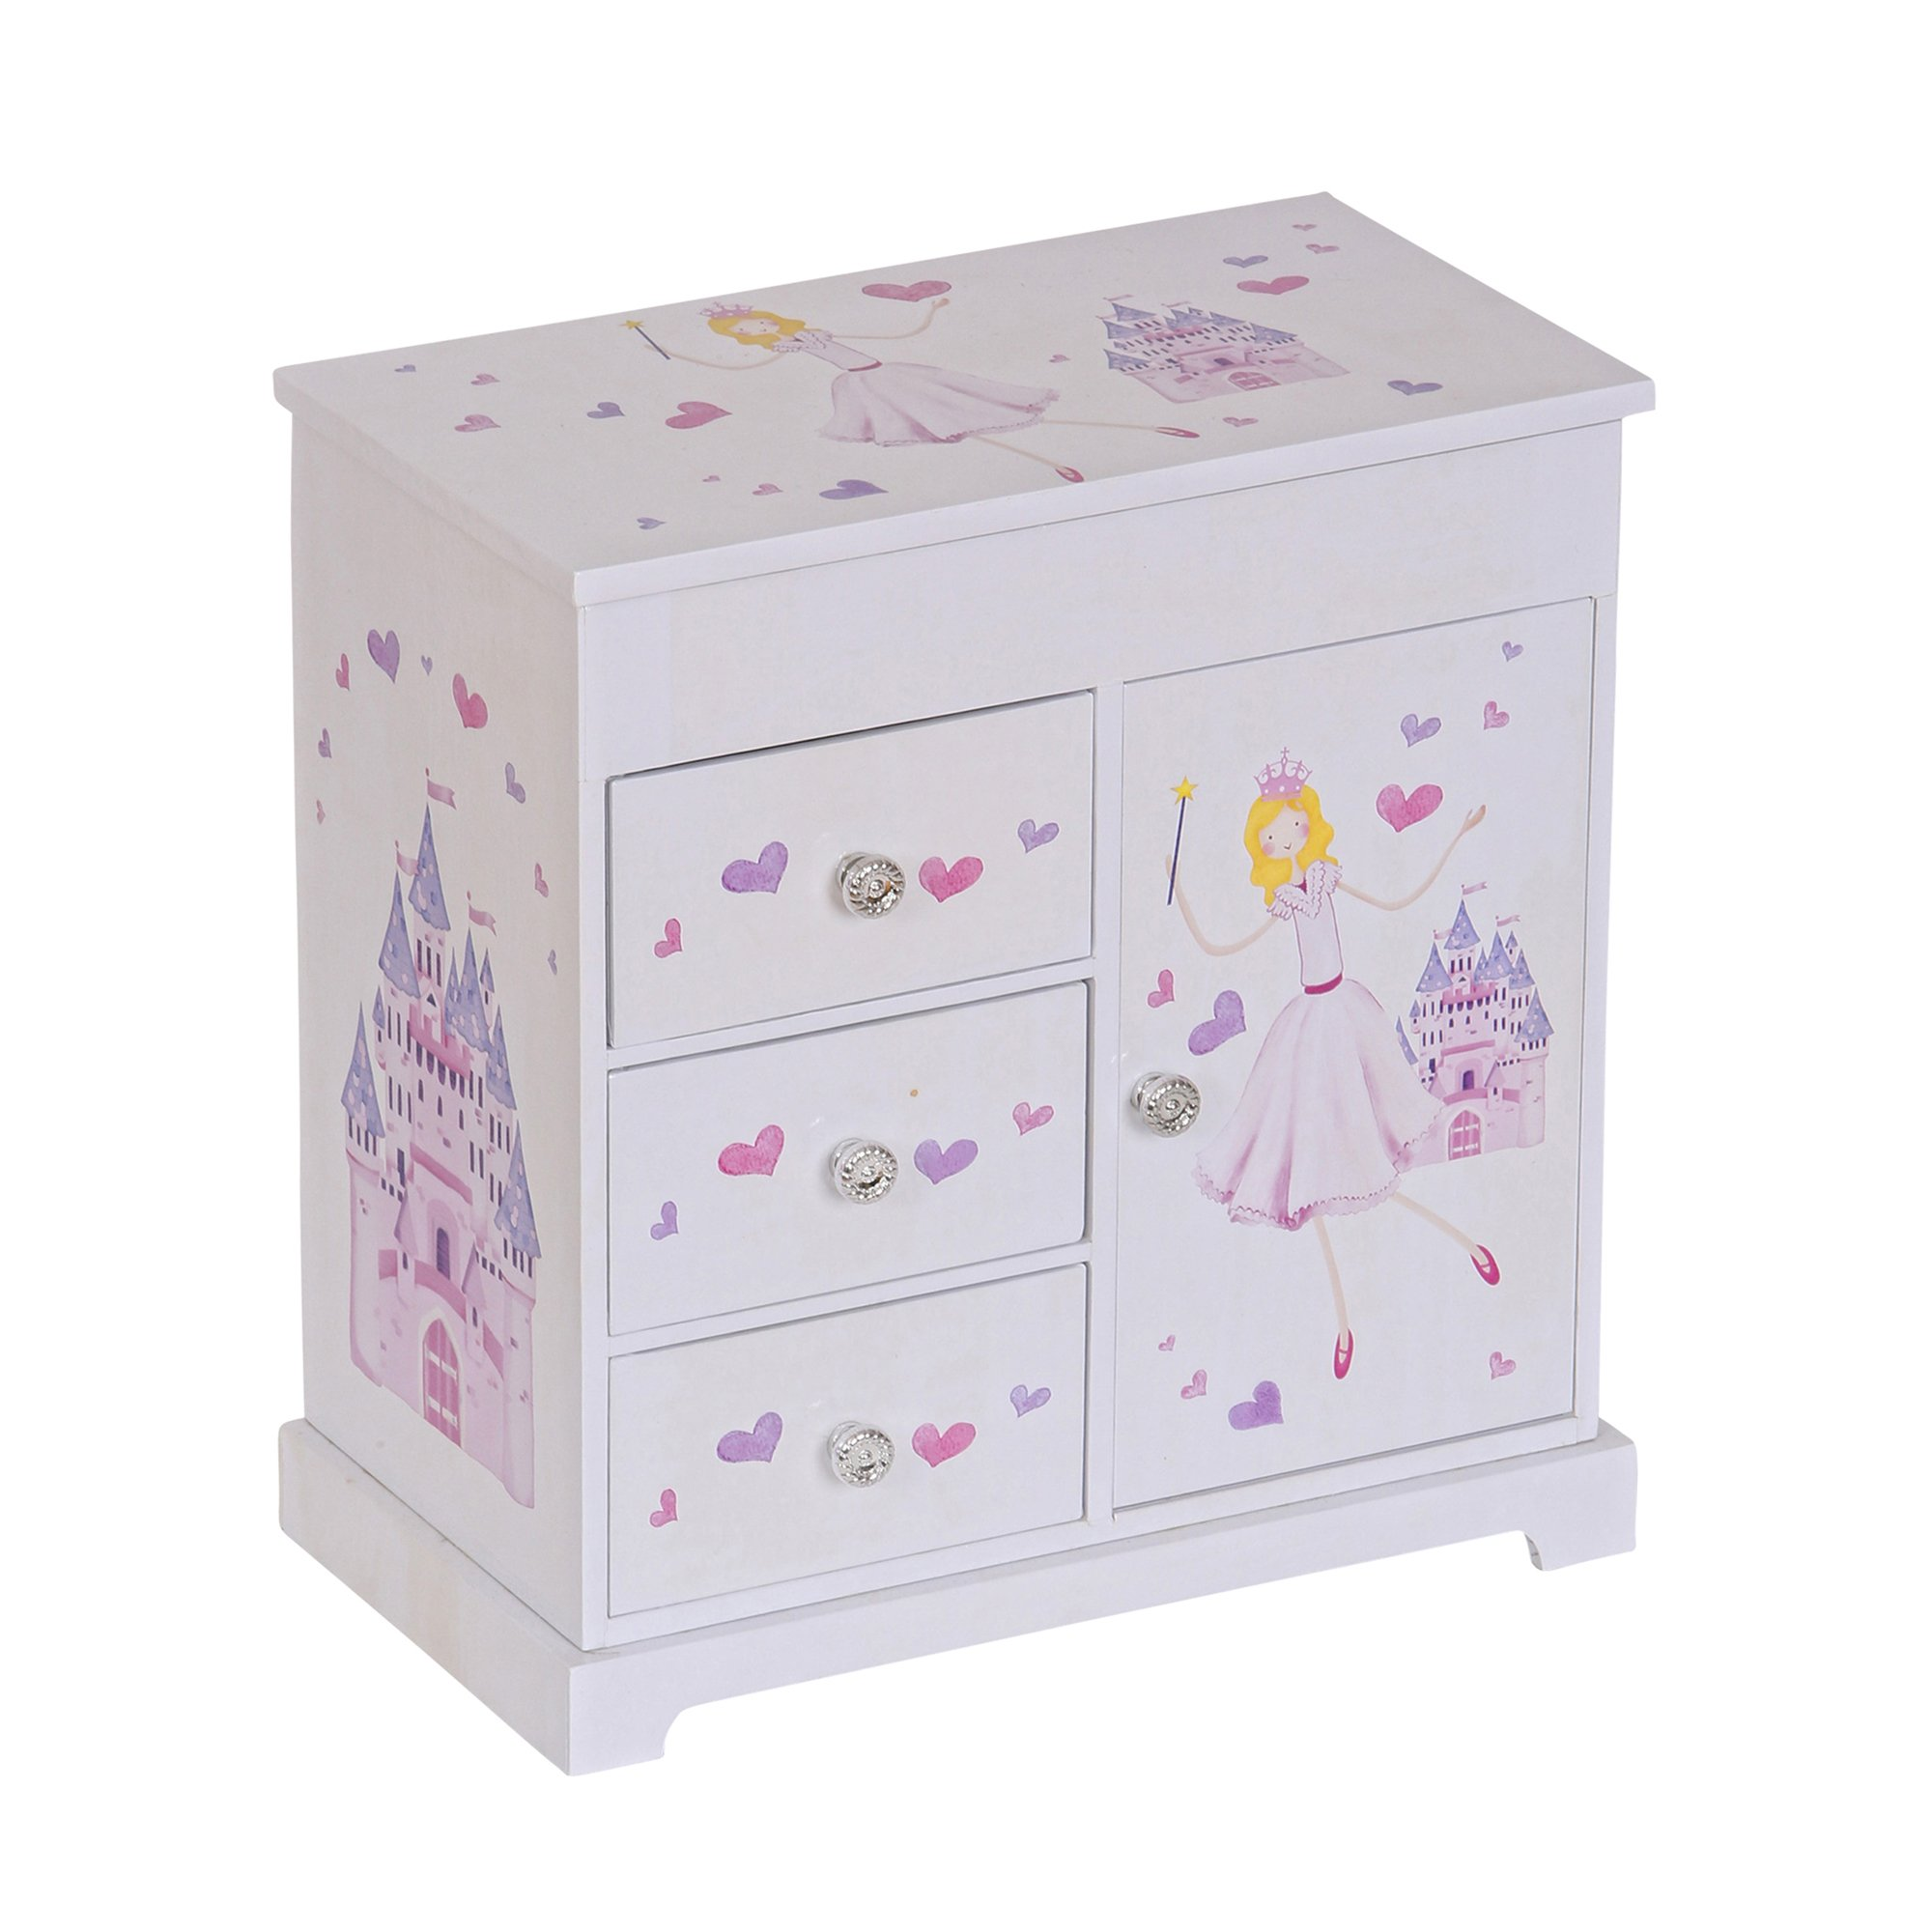 Mele & Co. Adalyn Girl's Musical Ballerina Jewelry Box (Castle & Fairy Princess Design)